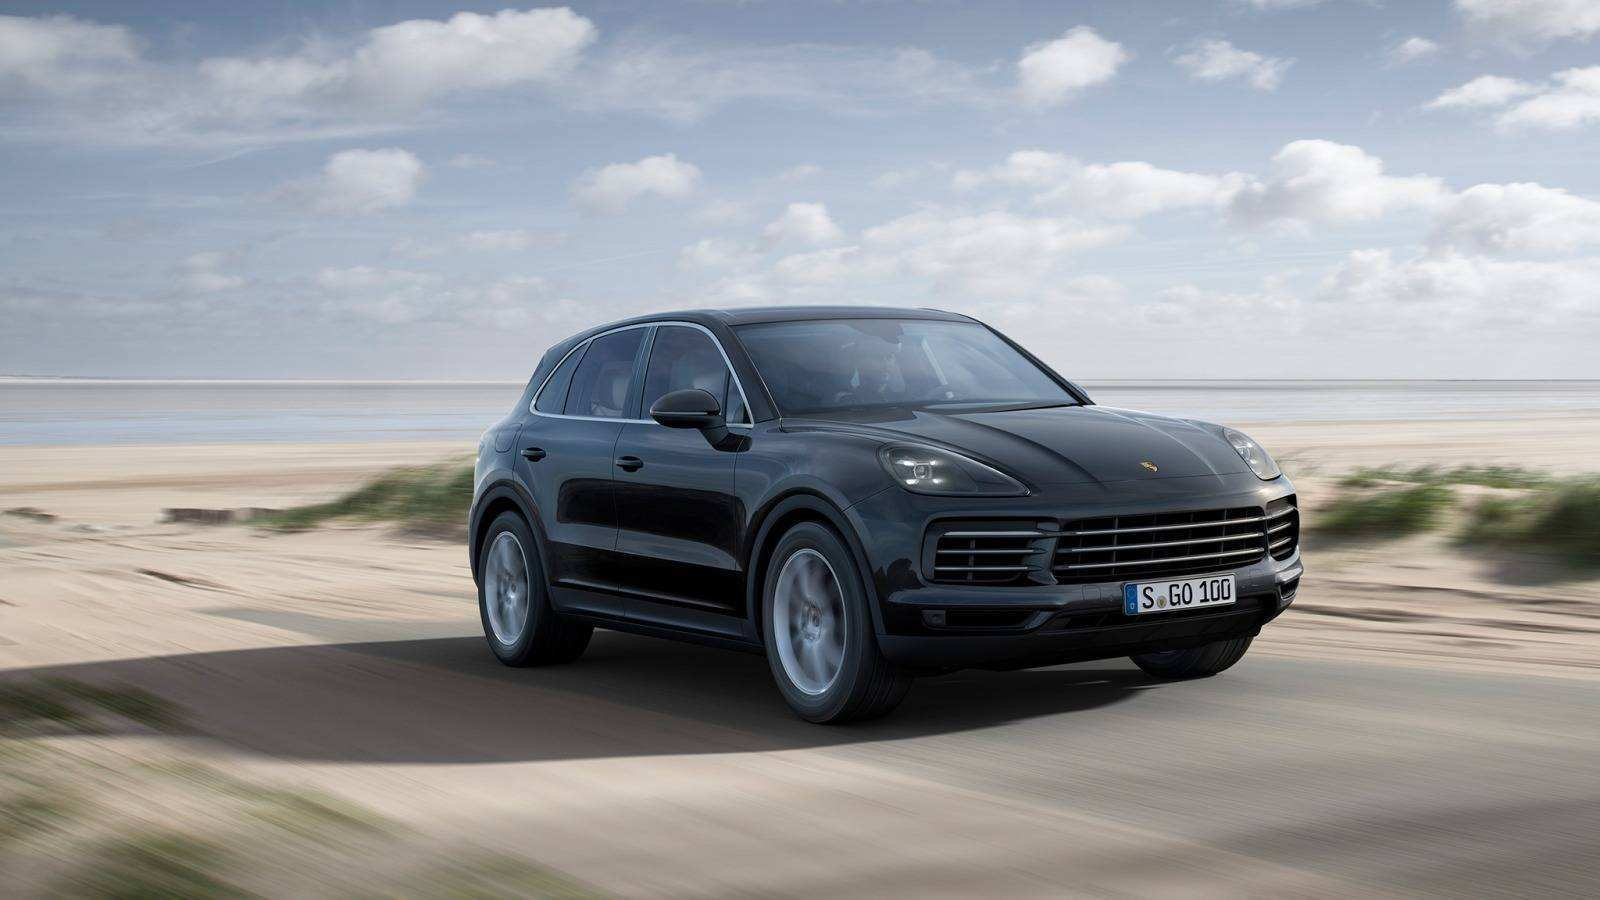 60 Concept of 2019 Porsche Cayenne Turbo Review Wallpaper with 2019 Porsche Cayenne Turbo Review